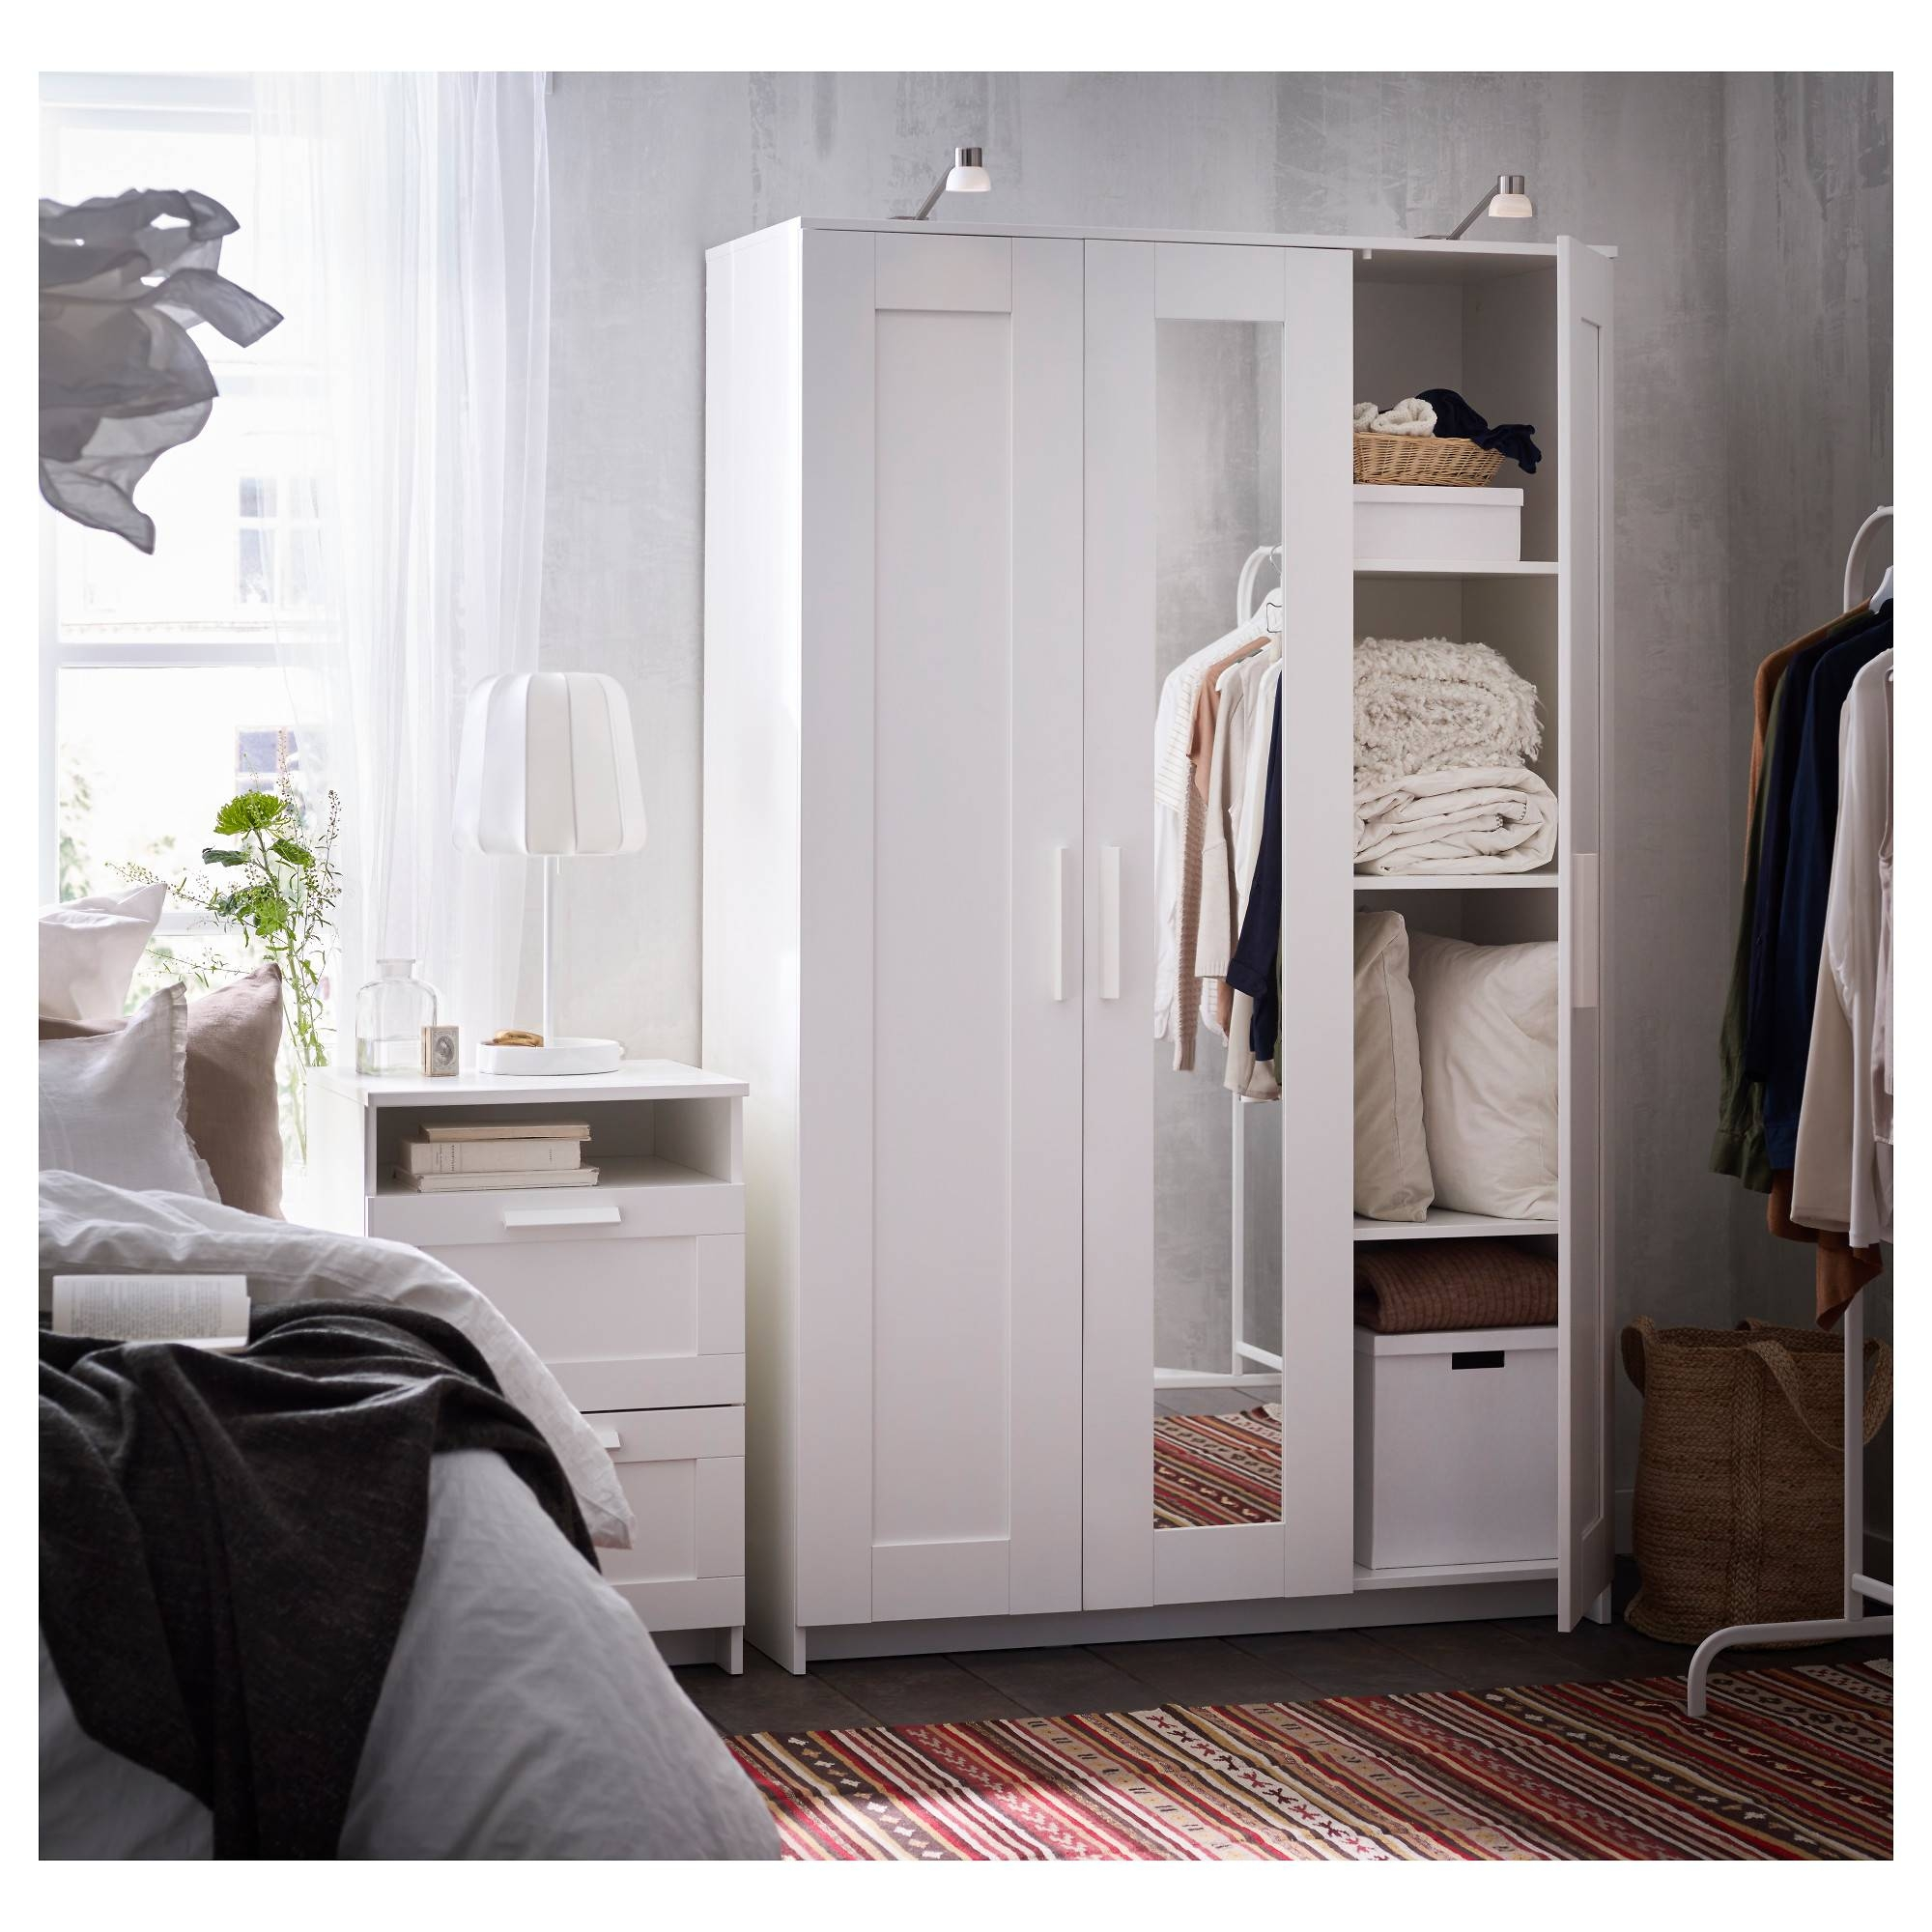 Brimnes Wardrobe With 3 Doors - White - Ikea with regard to White 3 Door Wardrobes With Mirror (Image 3 of 15)